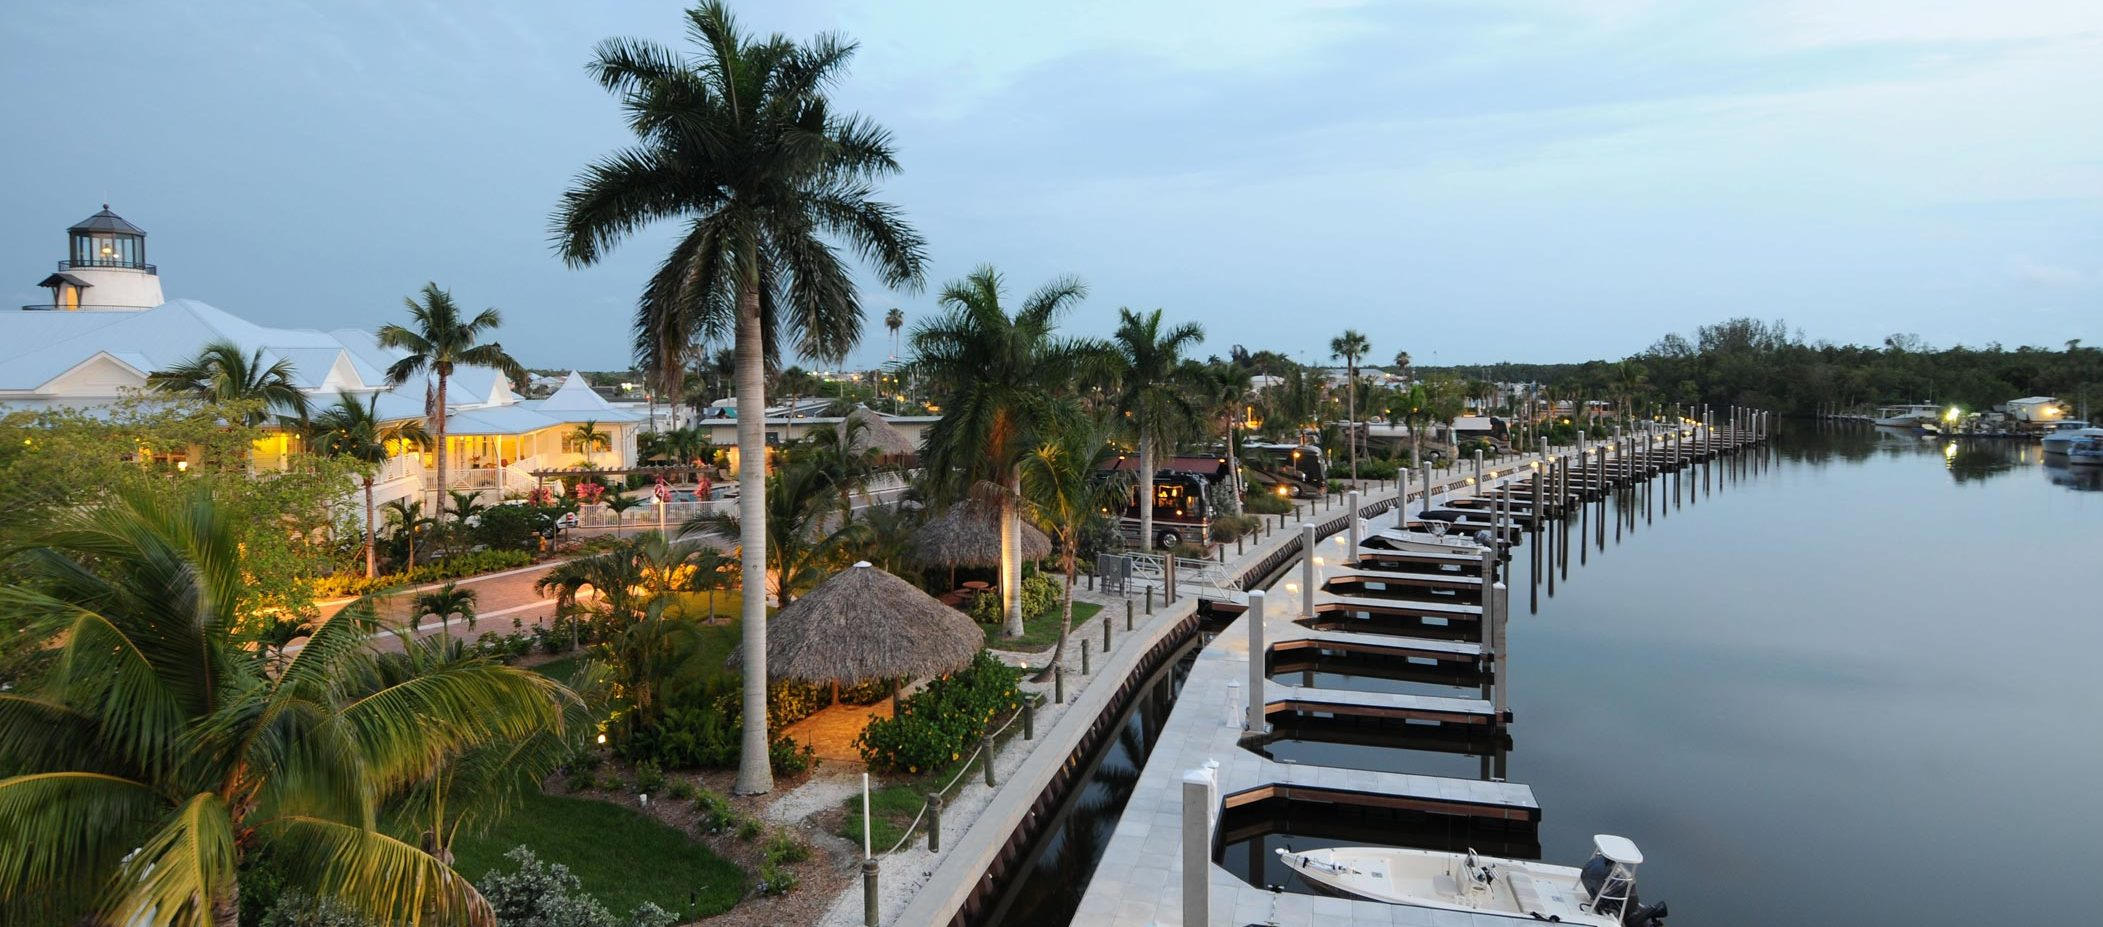 Everglades Isle Marina in Florida Now Open